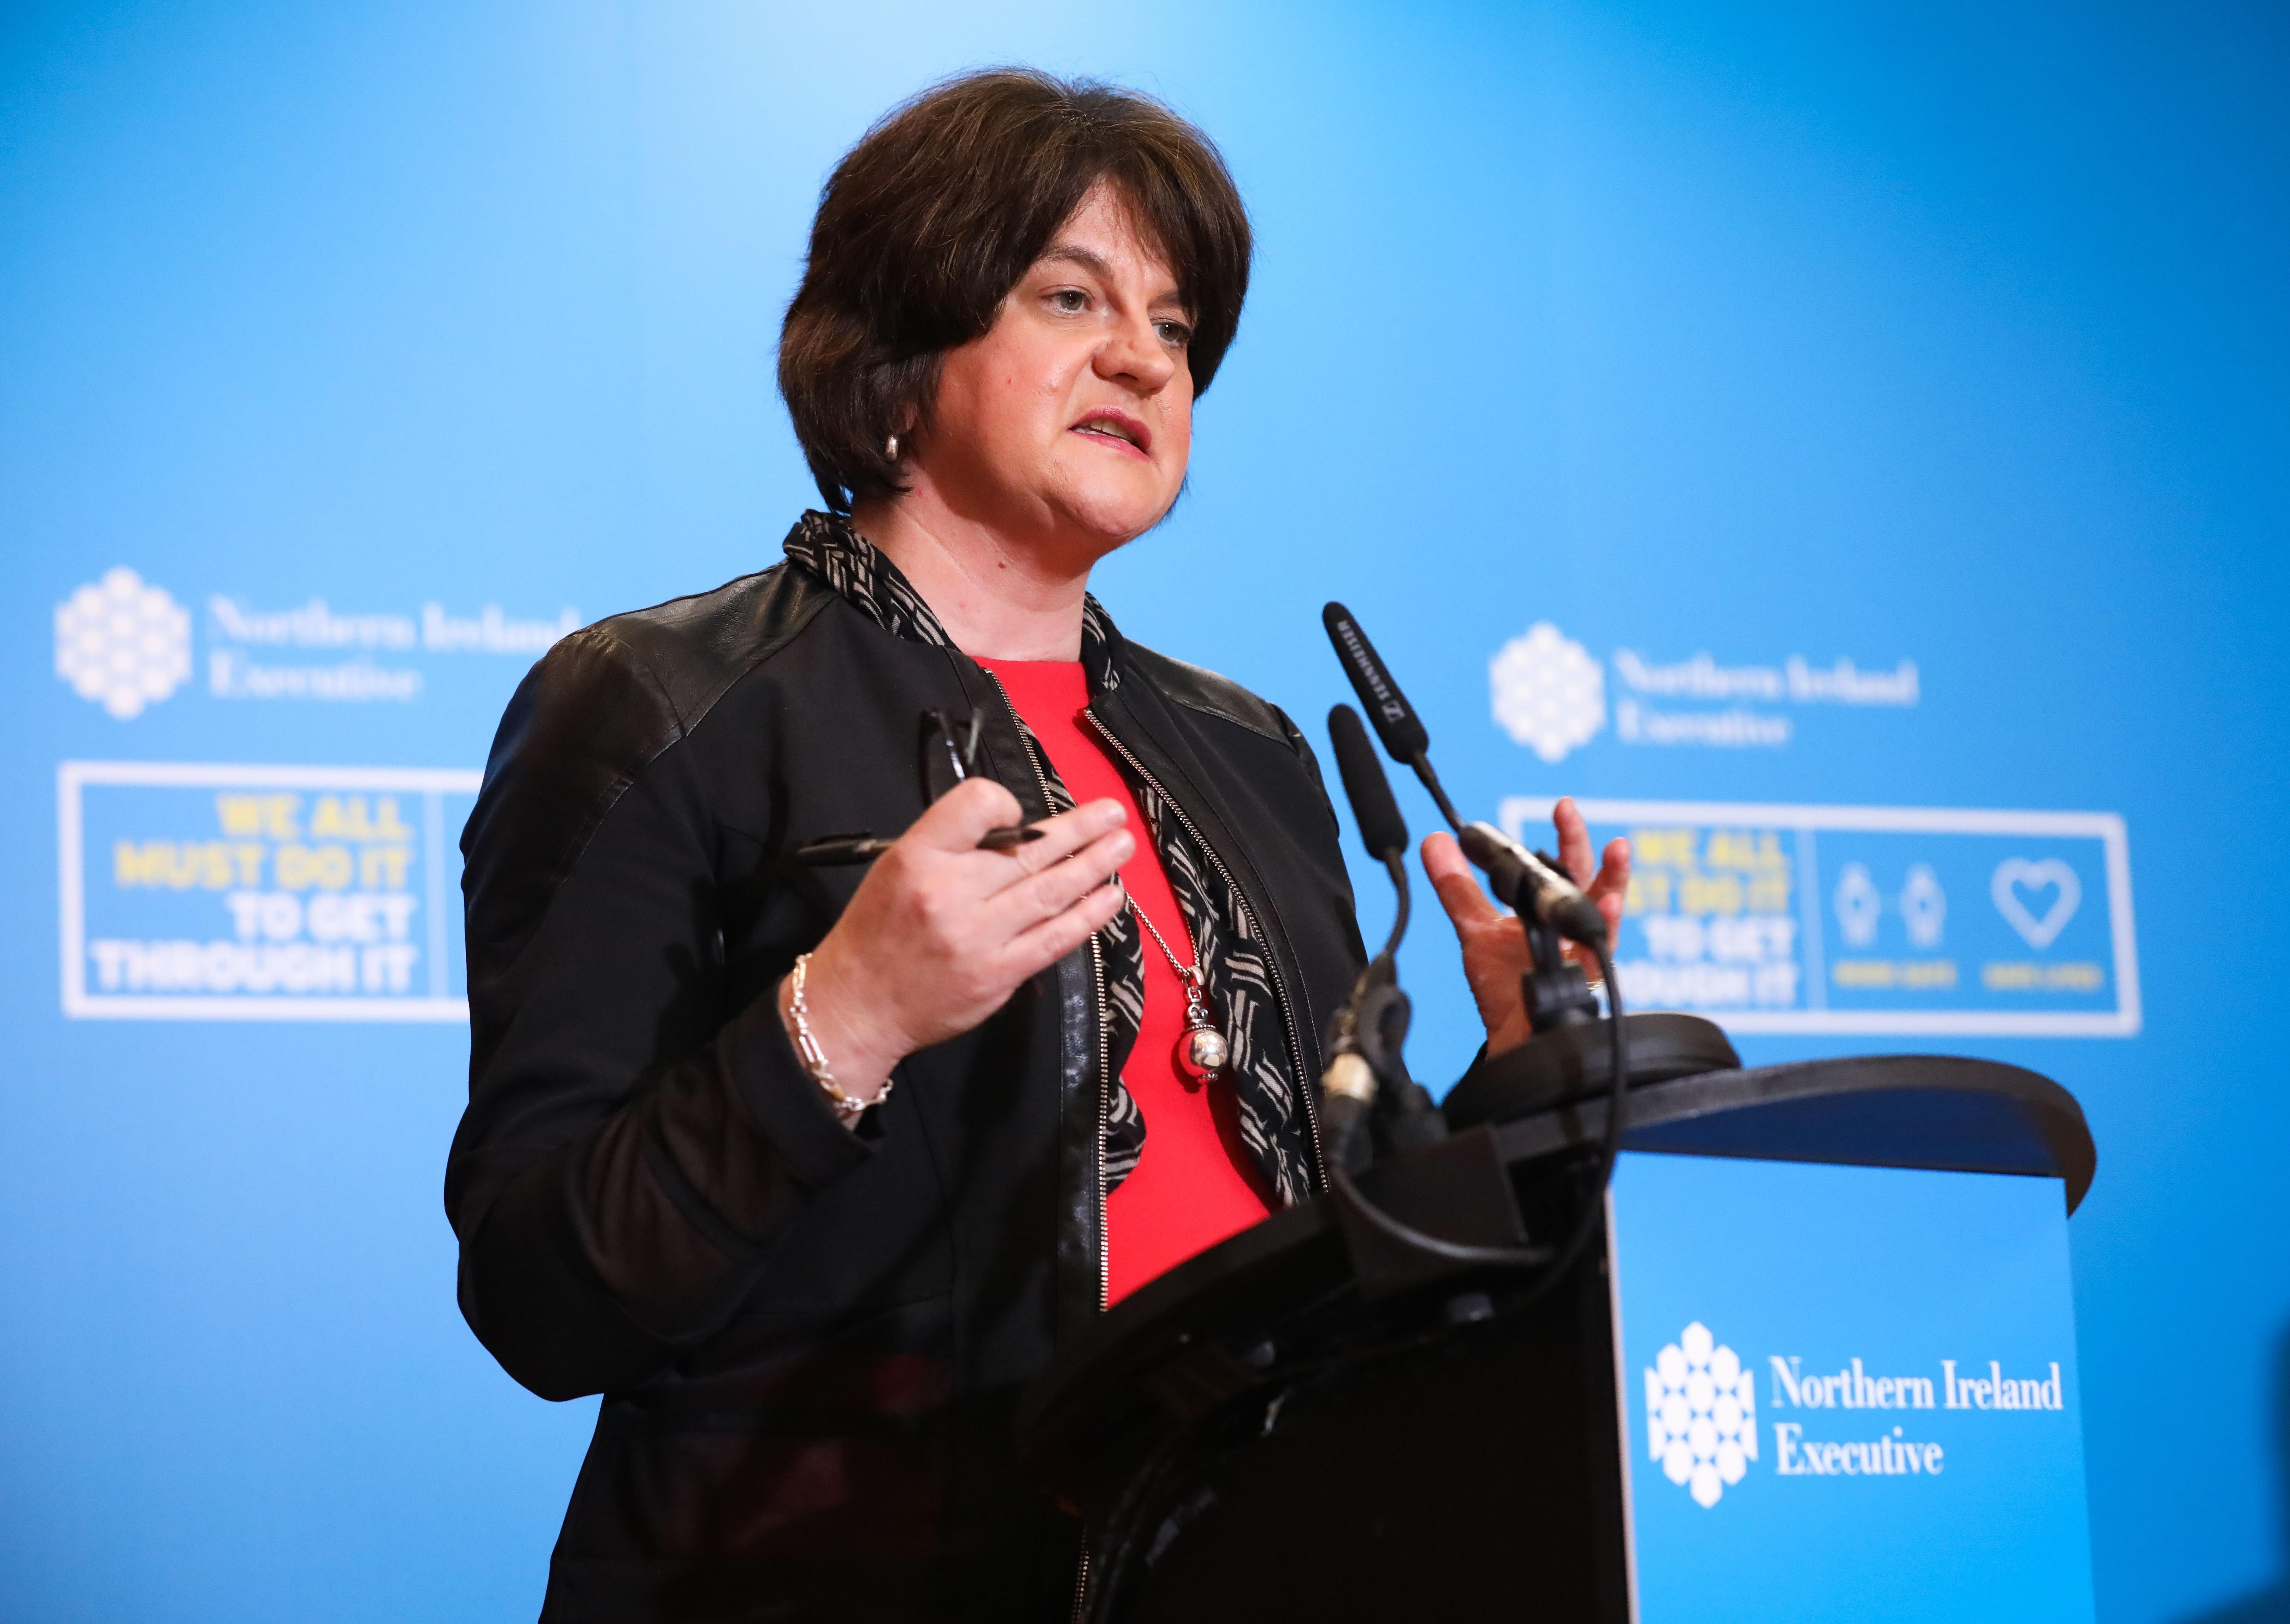 Arlene Foster article in full: There are no easy answers to Covid — the threat is real, yet we cannot keep closing the country down